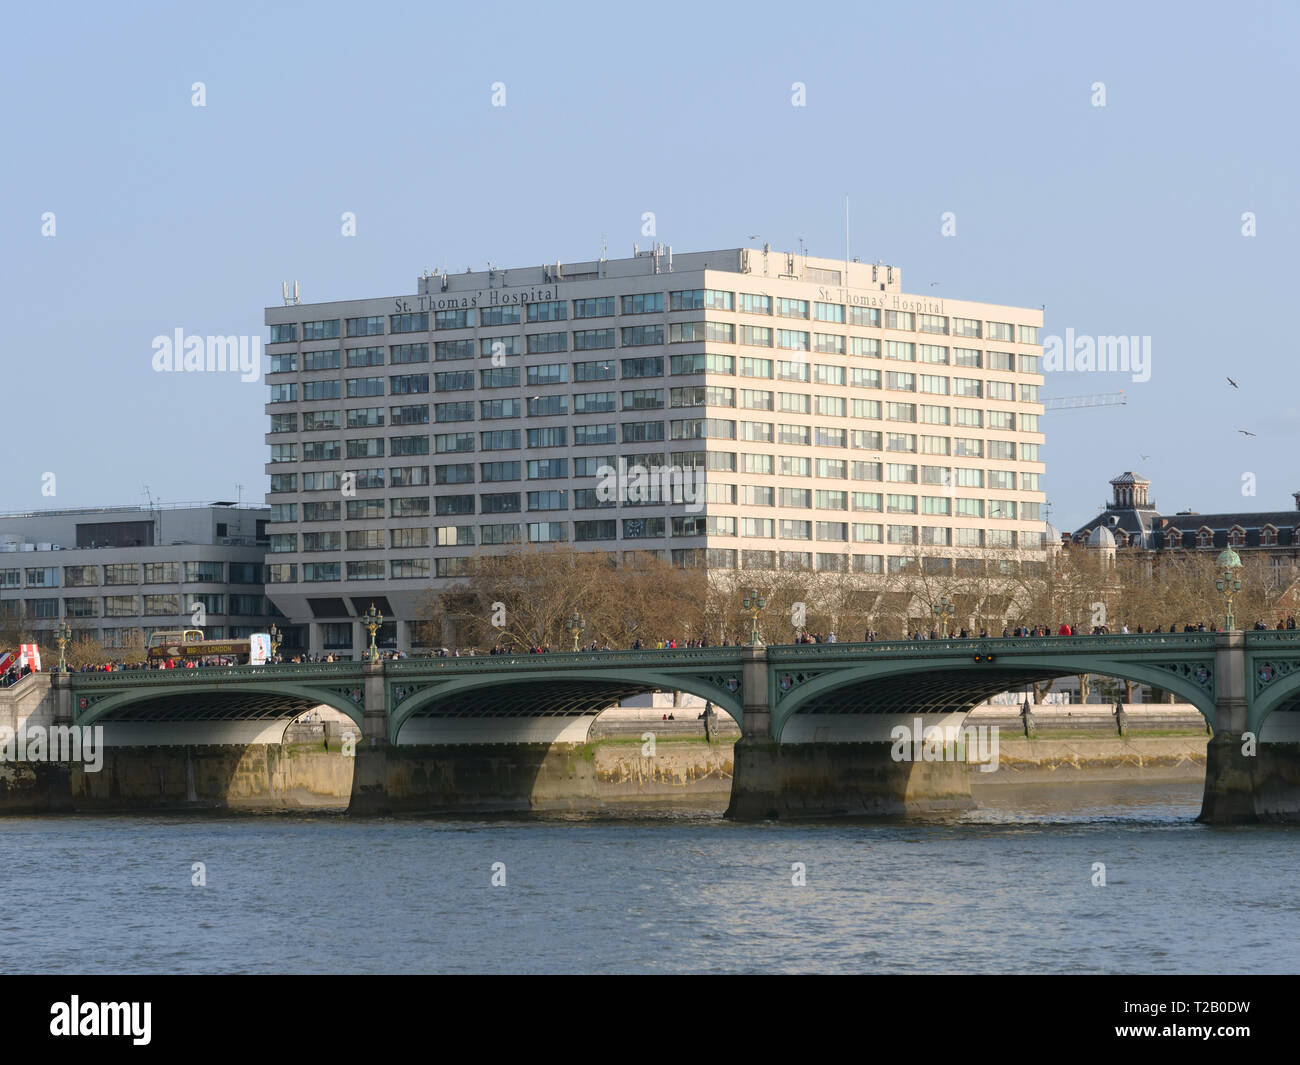 St Thomas Hospital is a teaching hospital in central London near